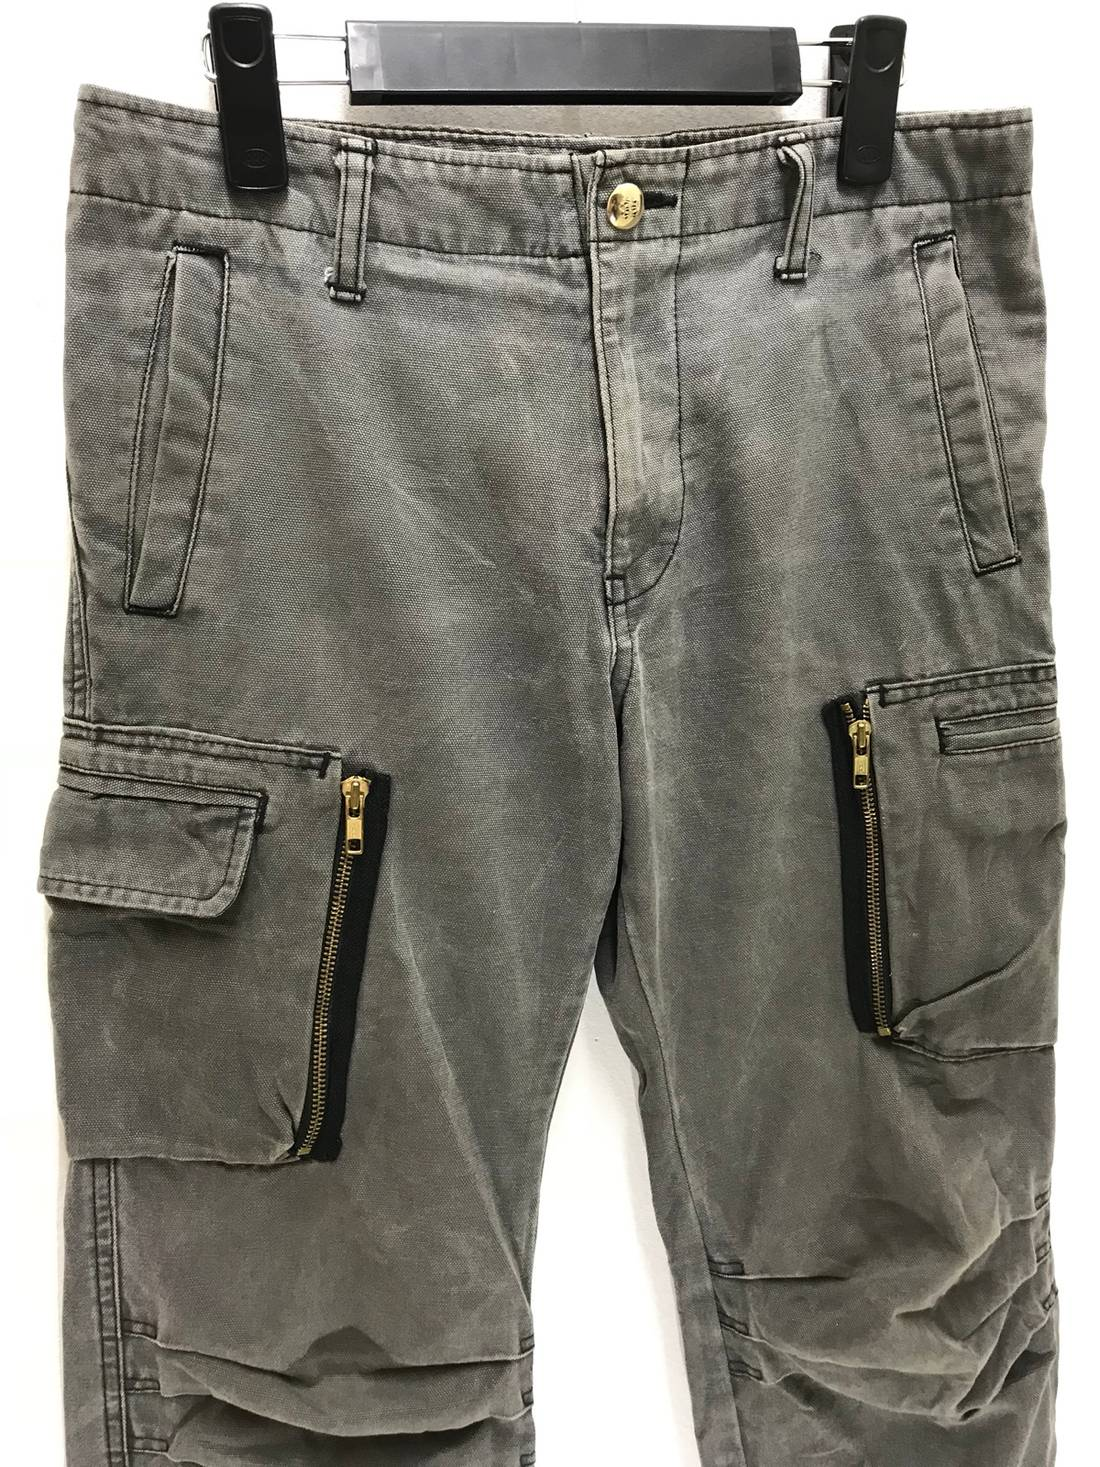 Cheap Sale Supply TROUSERS - Shorts Made Gold Best Store To Get Cheap Price Clearance Looking For Outlet Get To Buy Cheap Sale Best Seller Z7h6TOI